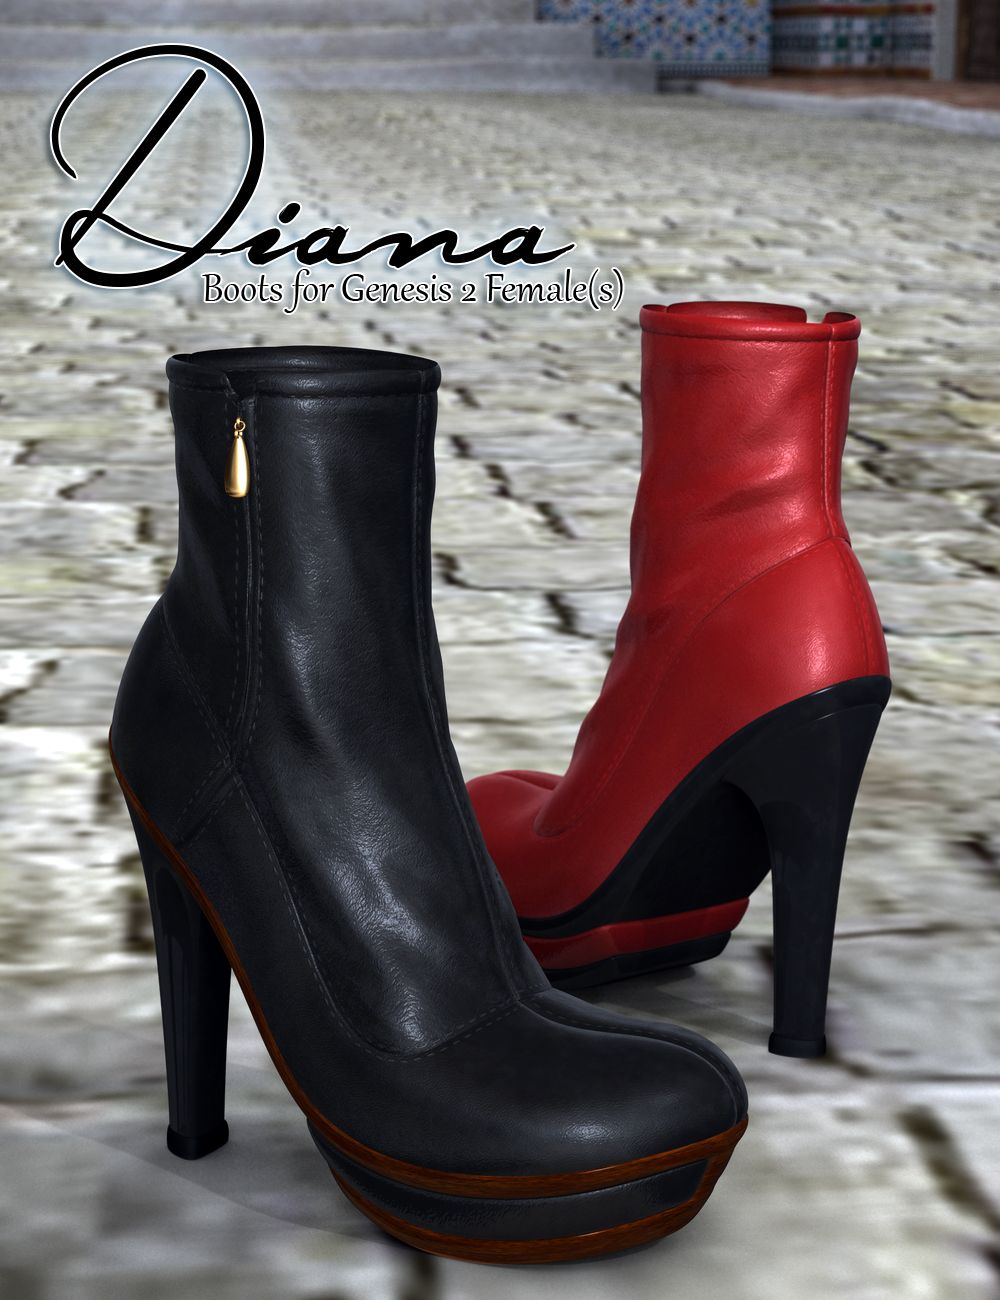 Diana Boots for Genesis 2 Female(s) by: SloshWerks, 3D Models by Daz 3D